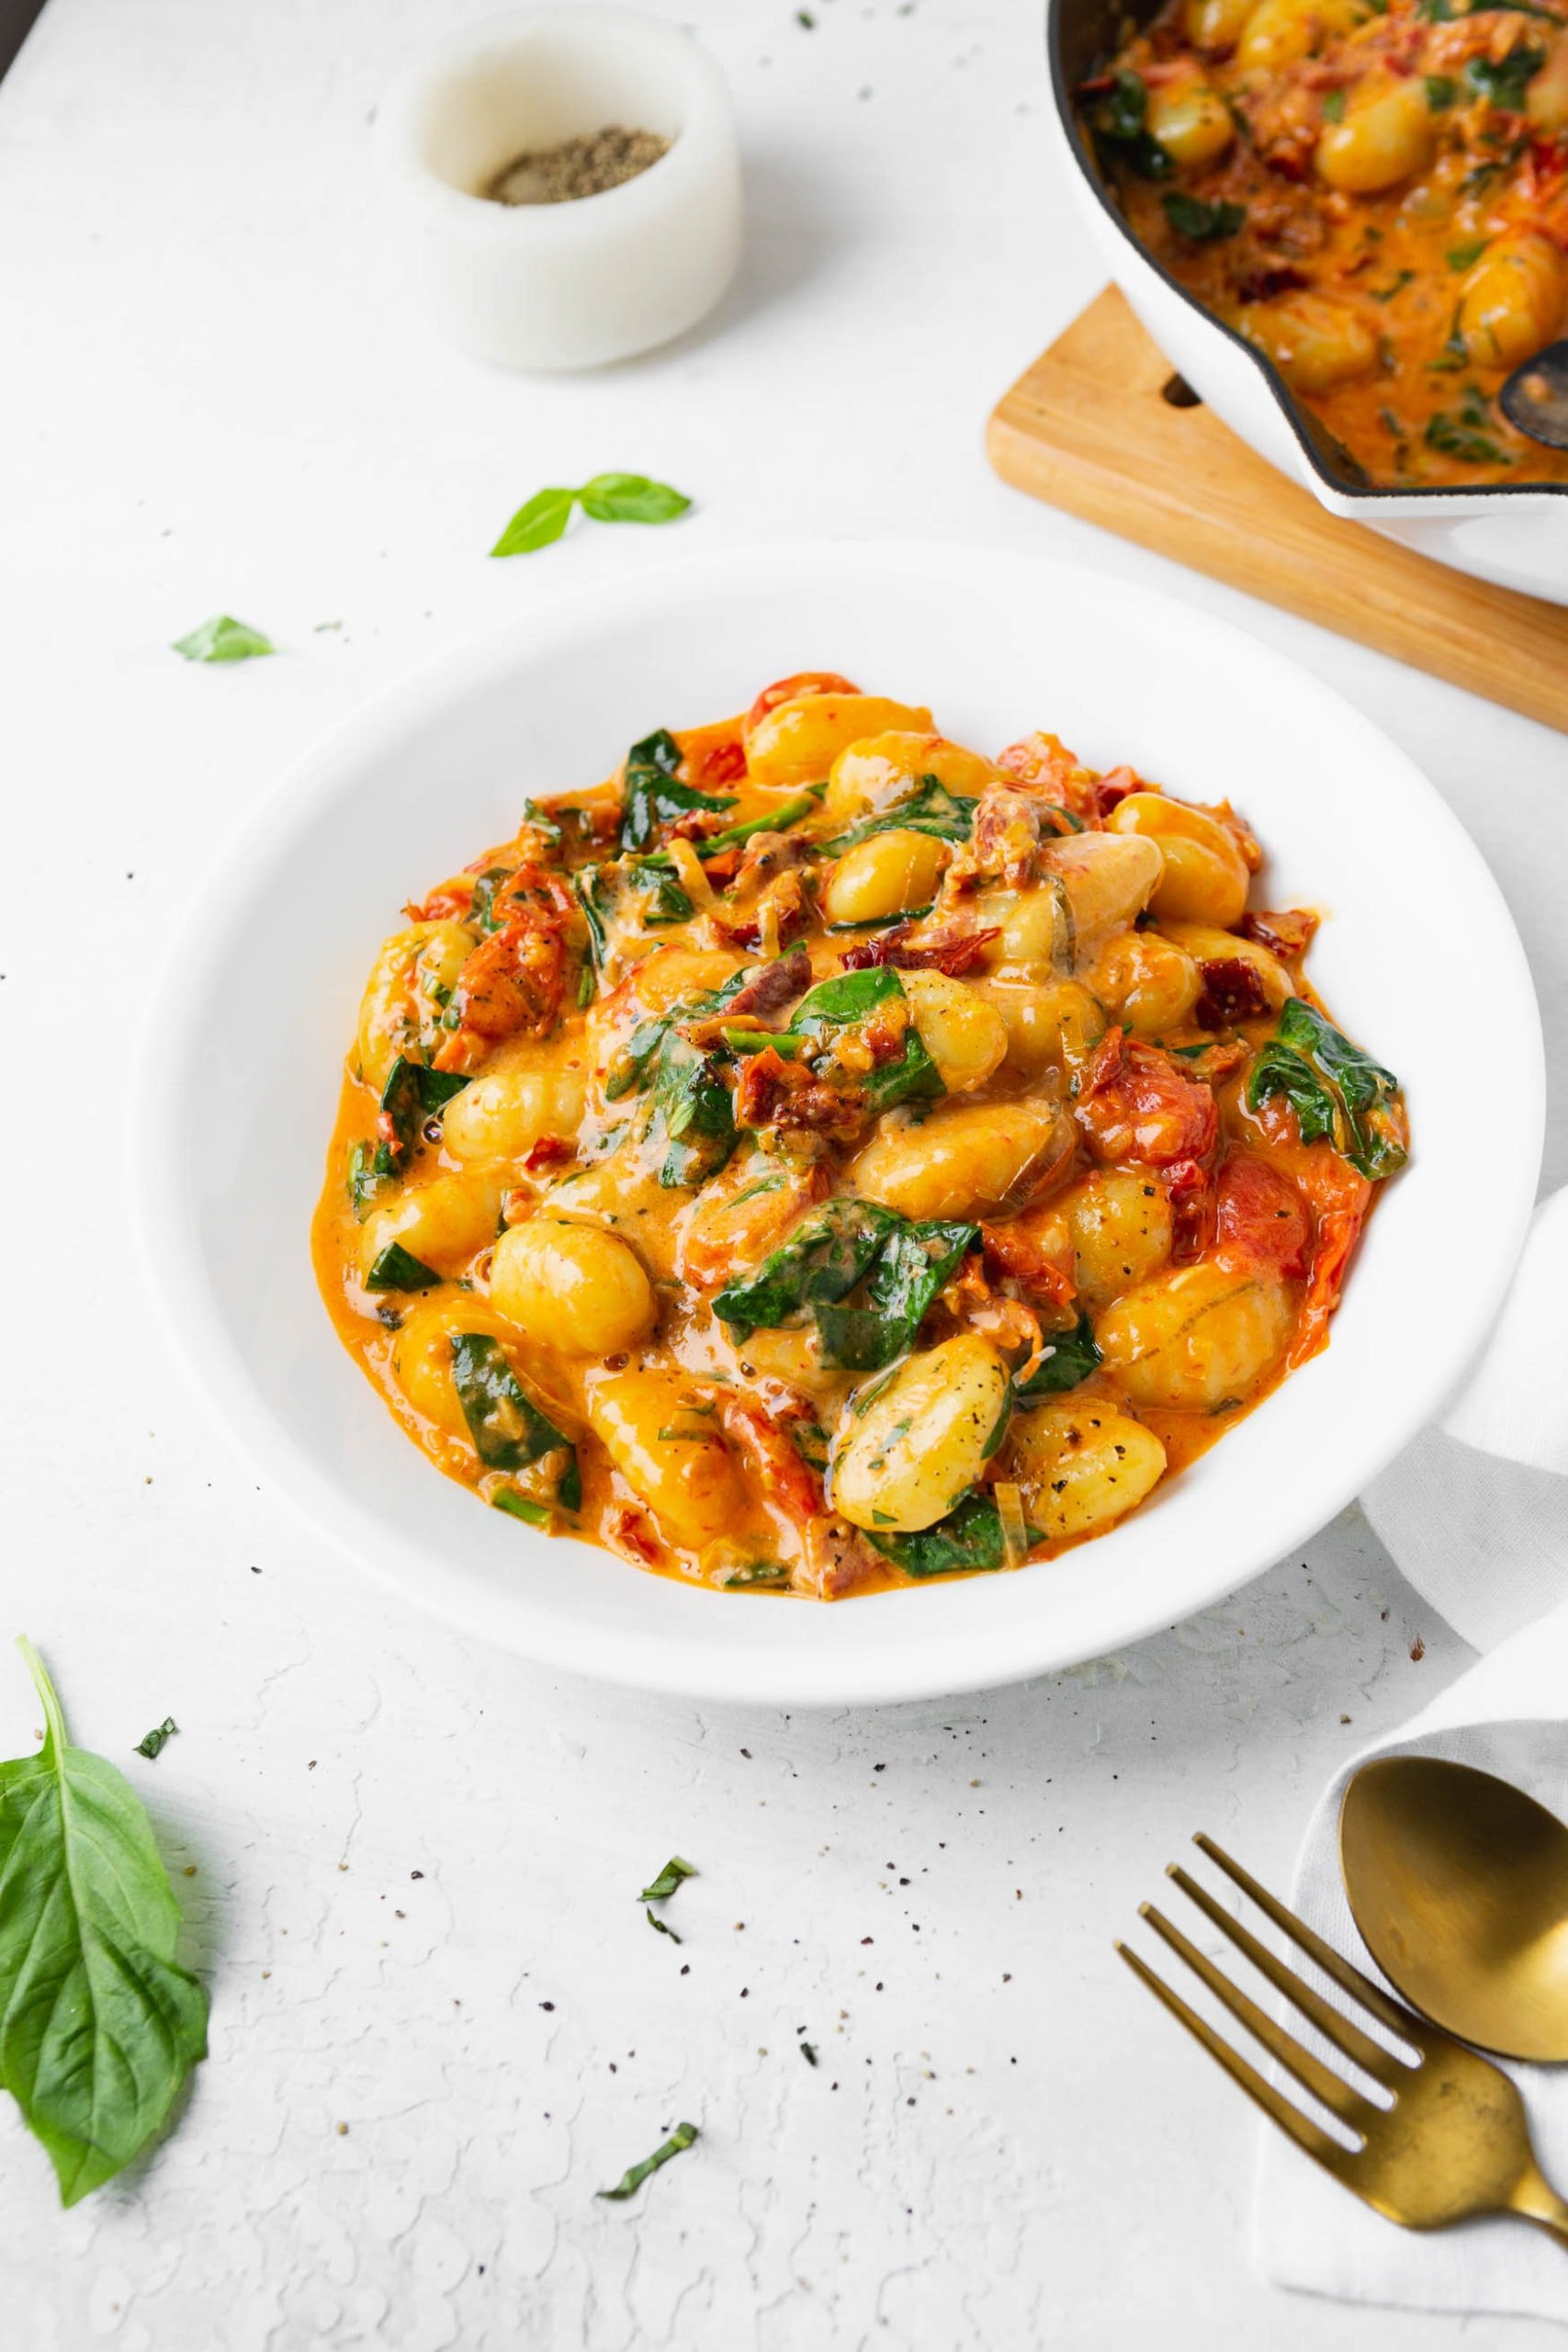 A photo of a white bowl full of creamy sun dried tomato gnocchi with a fork and spoon sitting next to the bowl.